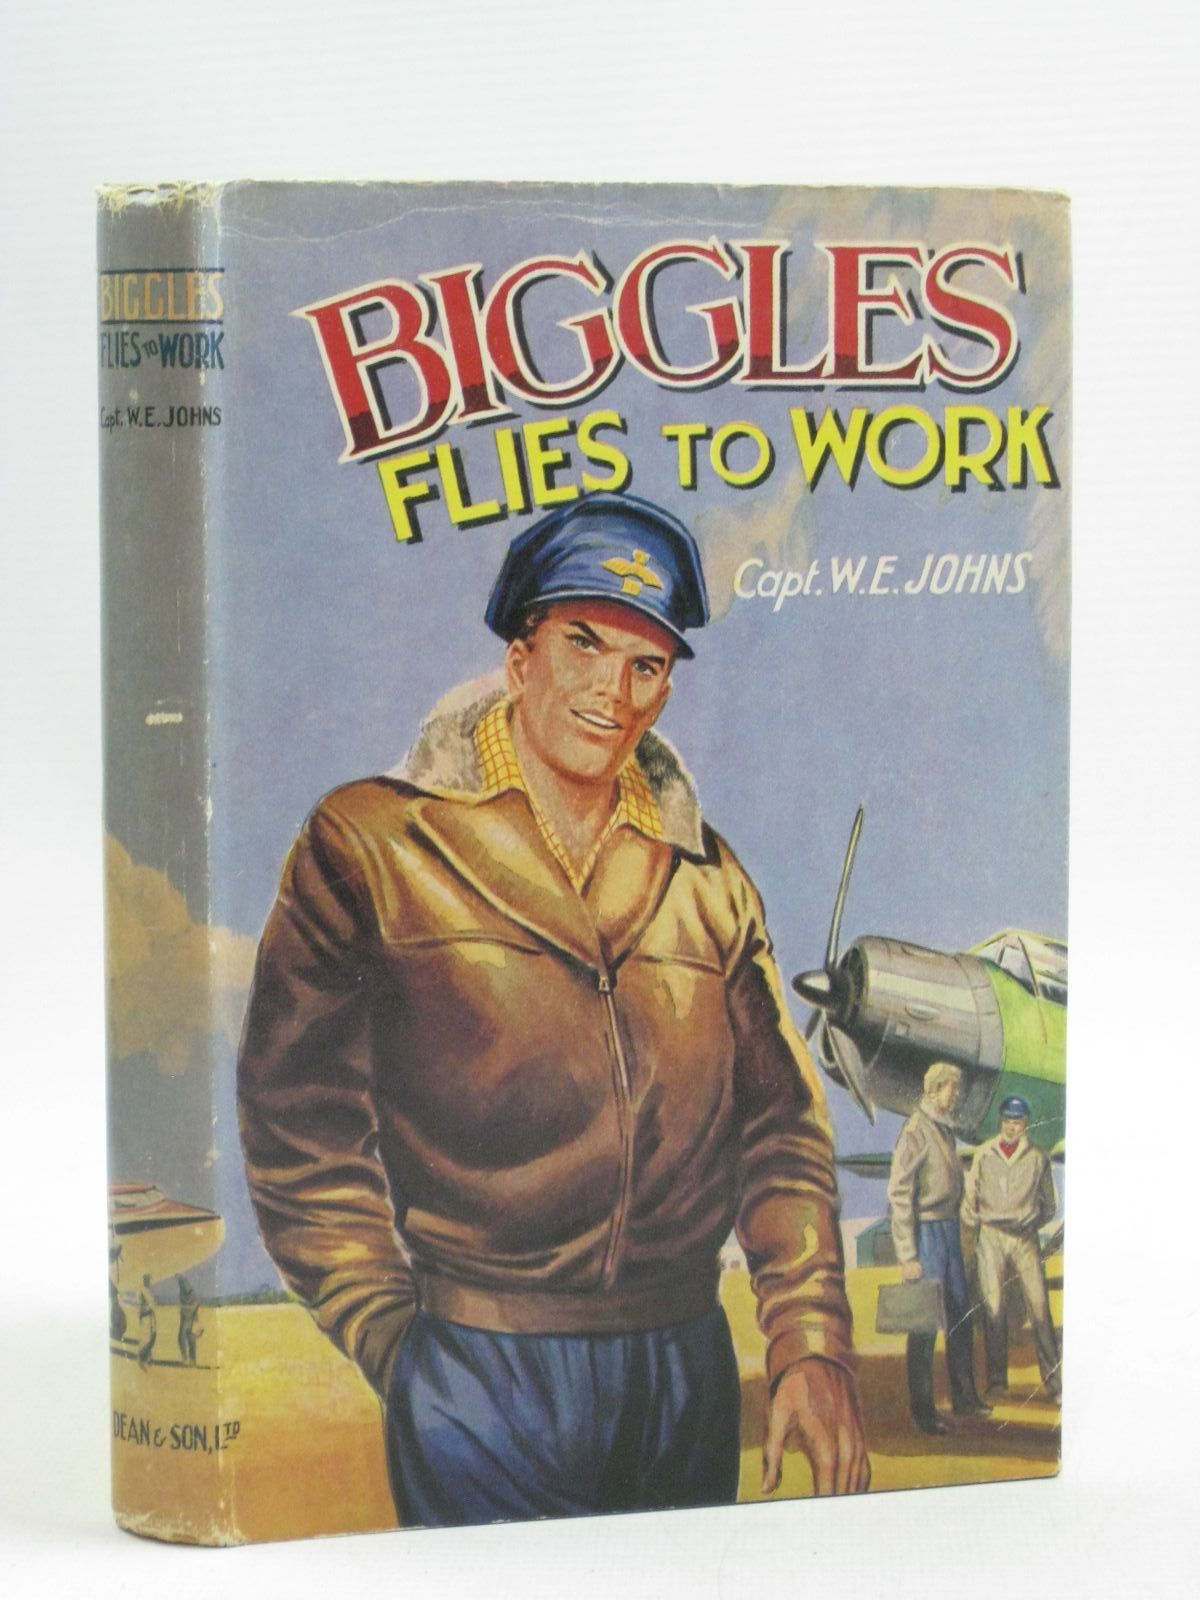 Photo of BIGGLES FLIES TO WORK written by Johns, W.E. published by Dean & Son Ltd. (STOCK CODE: 1404577)  for sale by Stella & Rose's Books